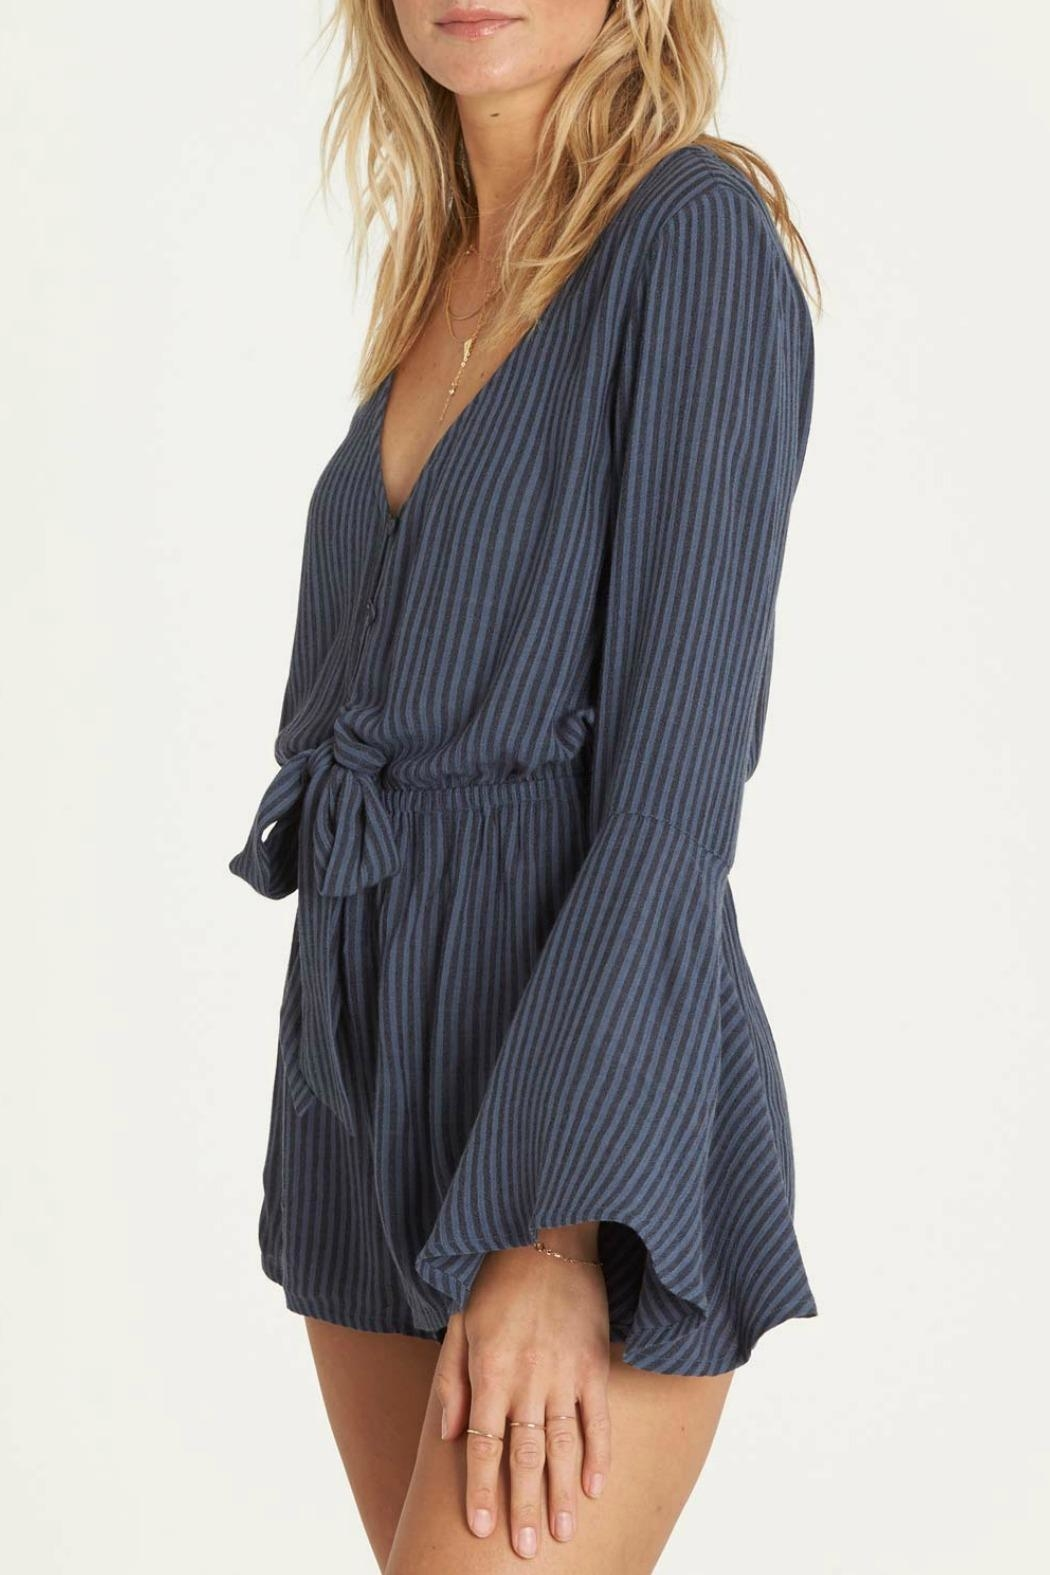 ad1946195584 Billabong Stripe Romper from Minnesota by The Vintage Gypsy — Shoptiques